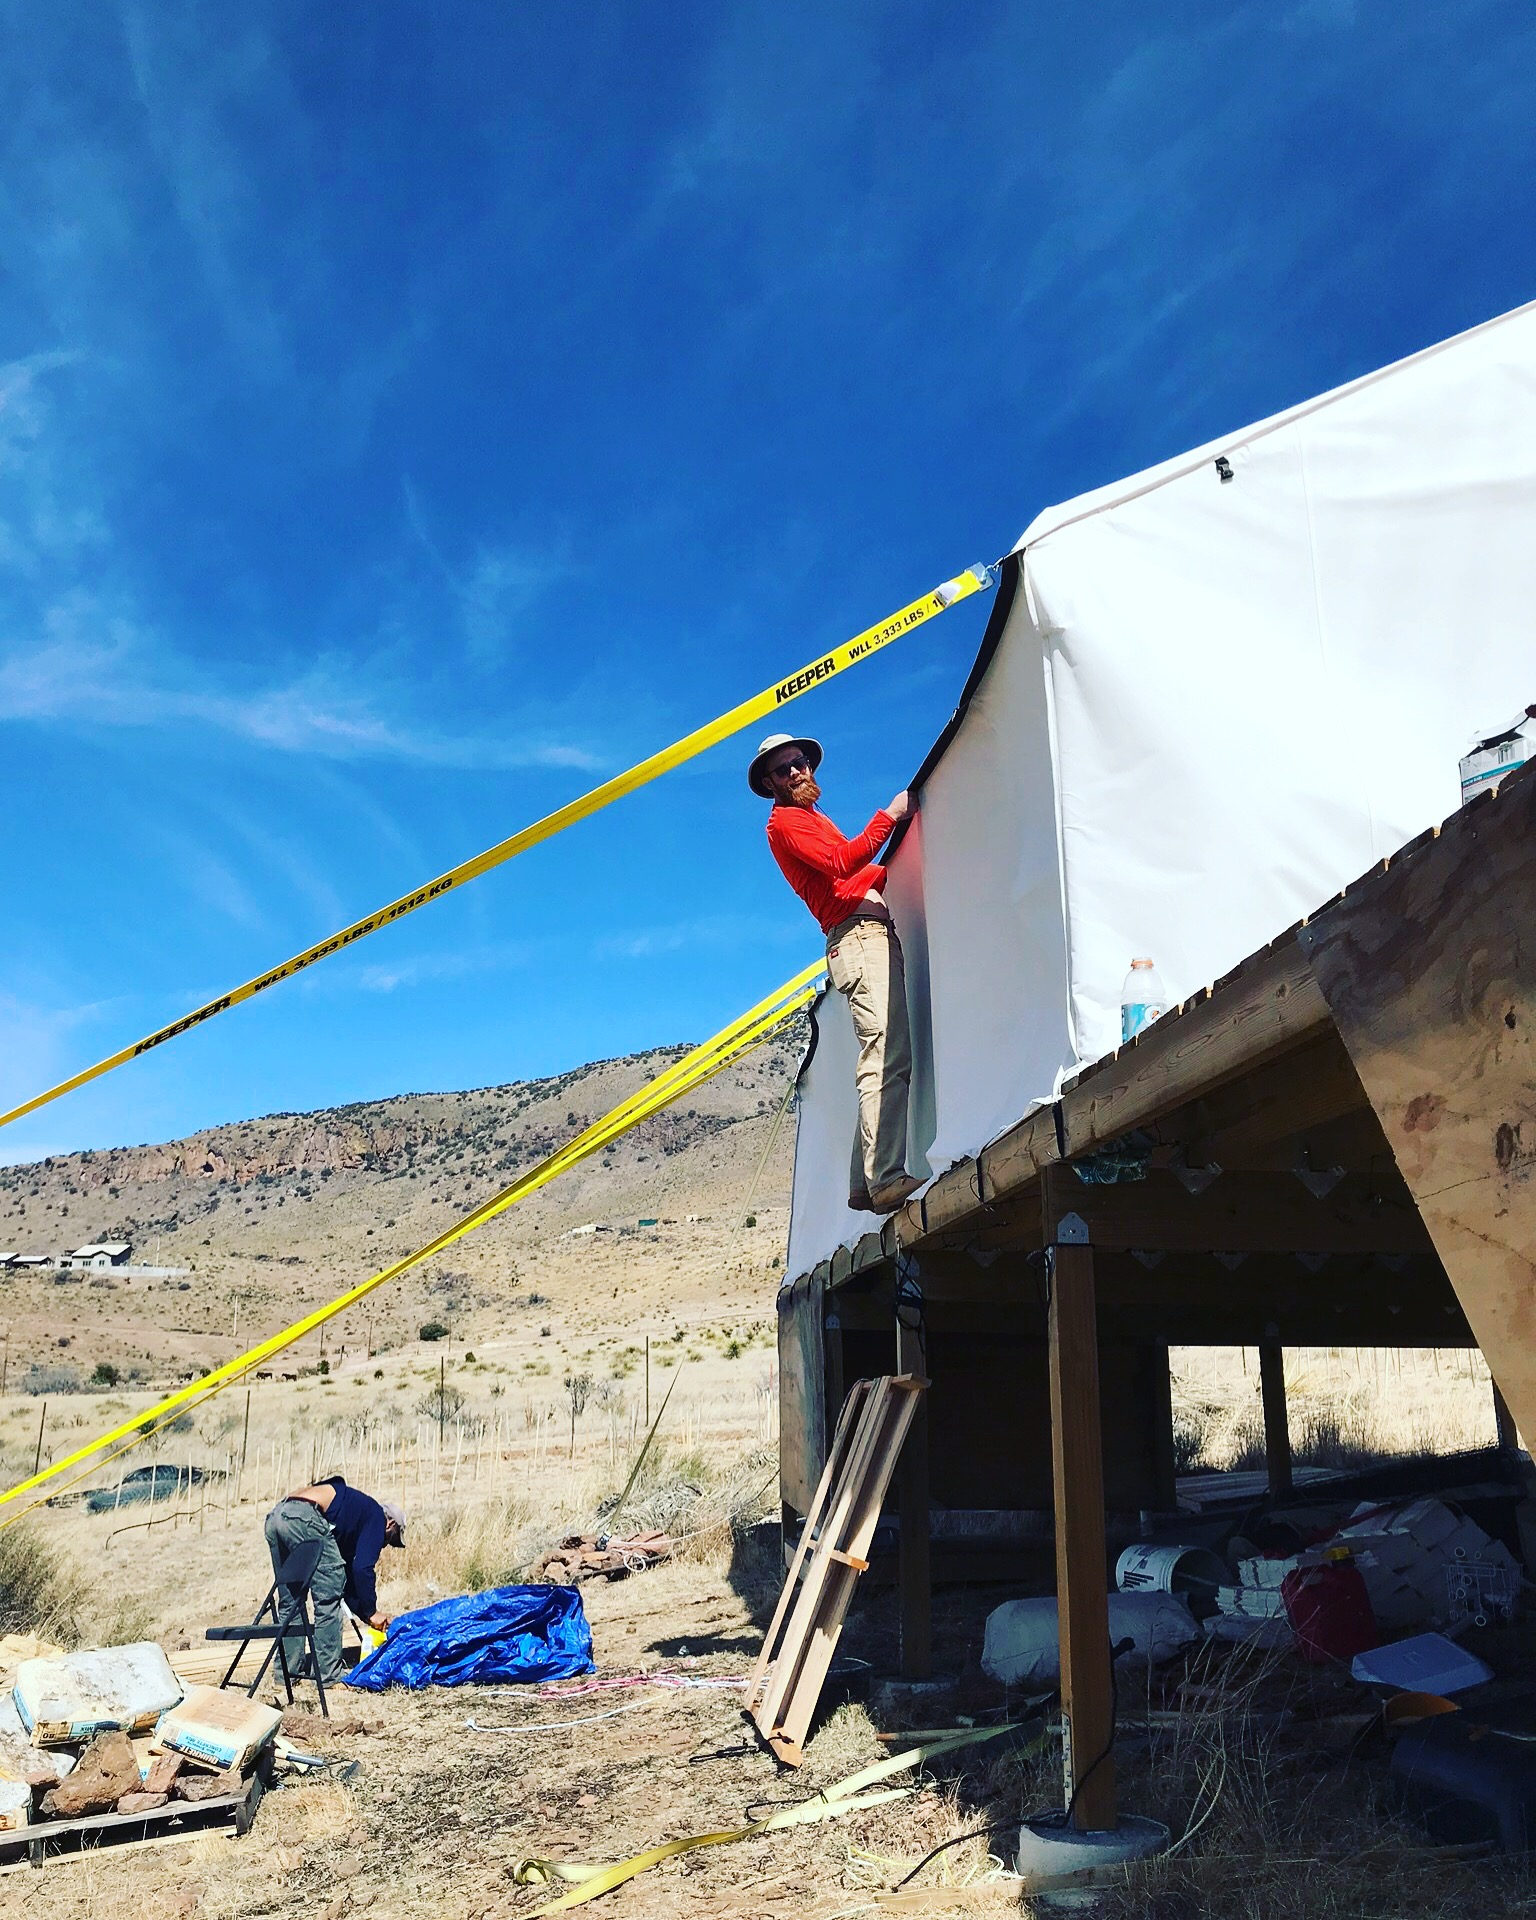 I have never felt more like a pirate than this moment. We got some heavy duty straps to make sure the tent doesn't blow away. During the winter and spring we routinely have 30-40 mph winds.